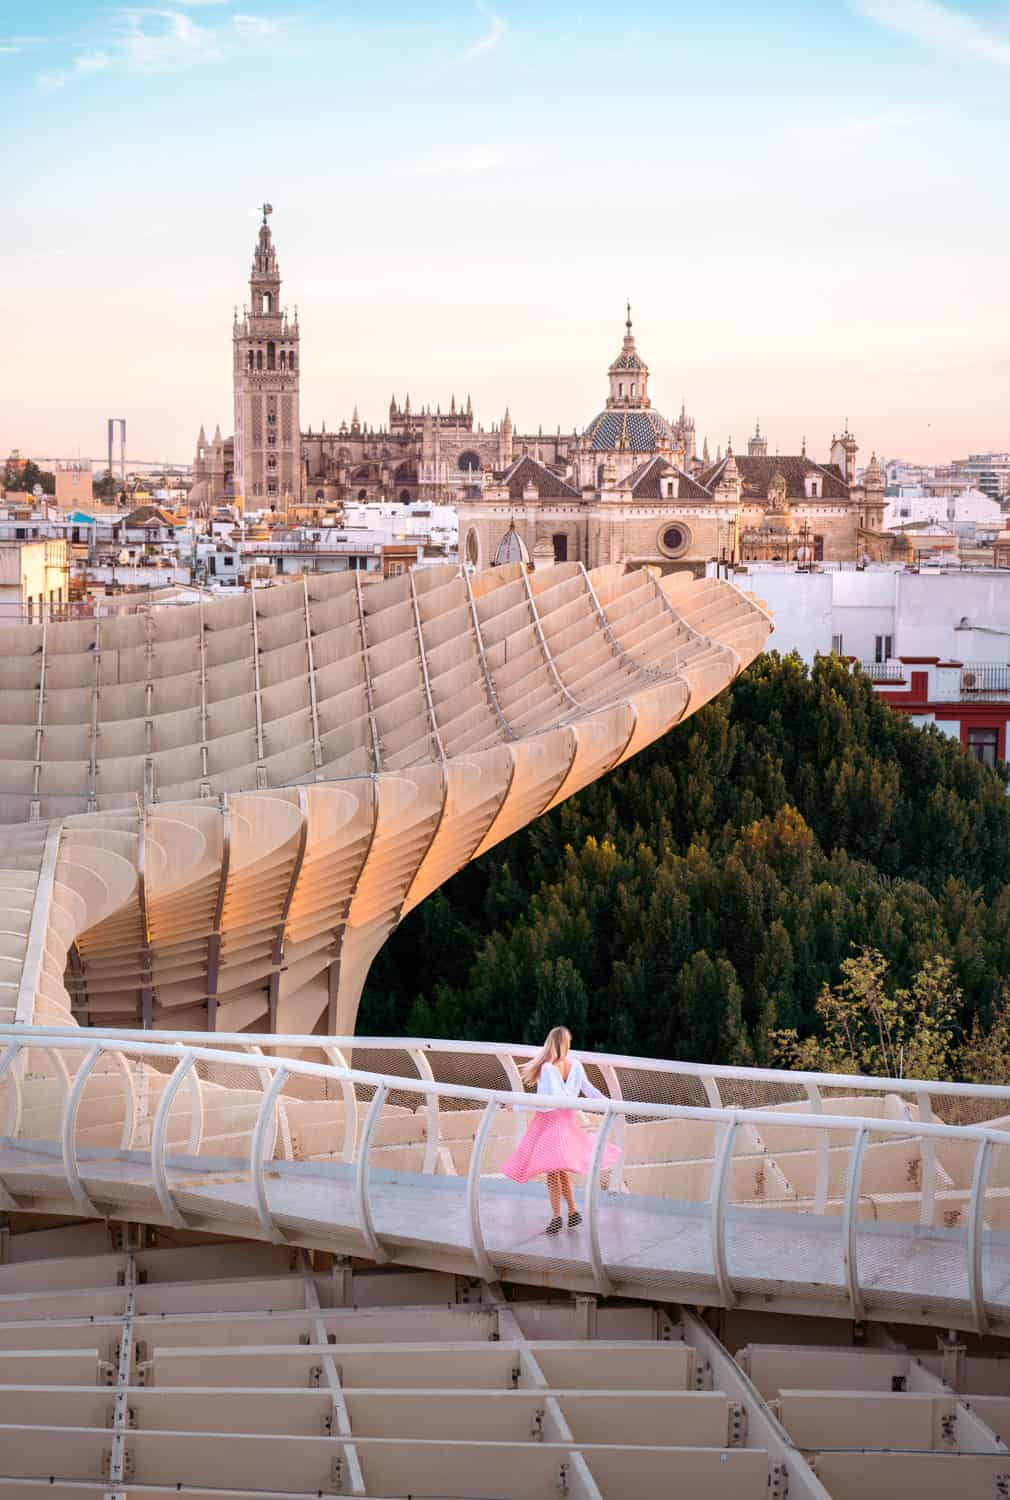 A girl in a pink skirt on the Metropol Parasol walkway overlooking the Seville Cathedral